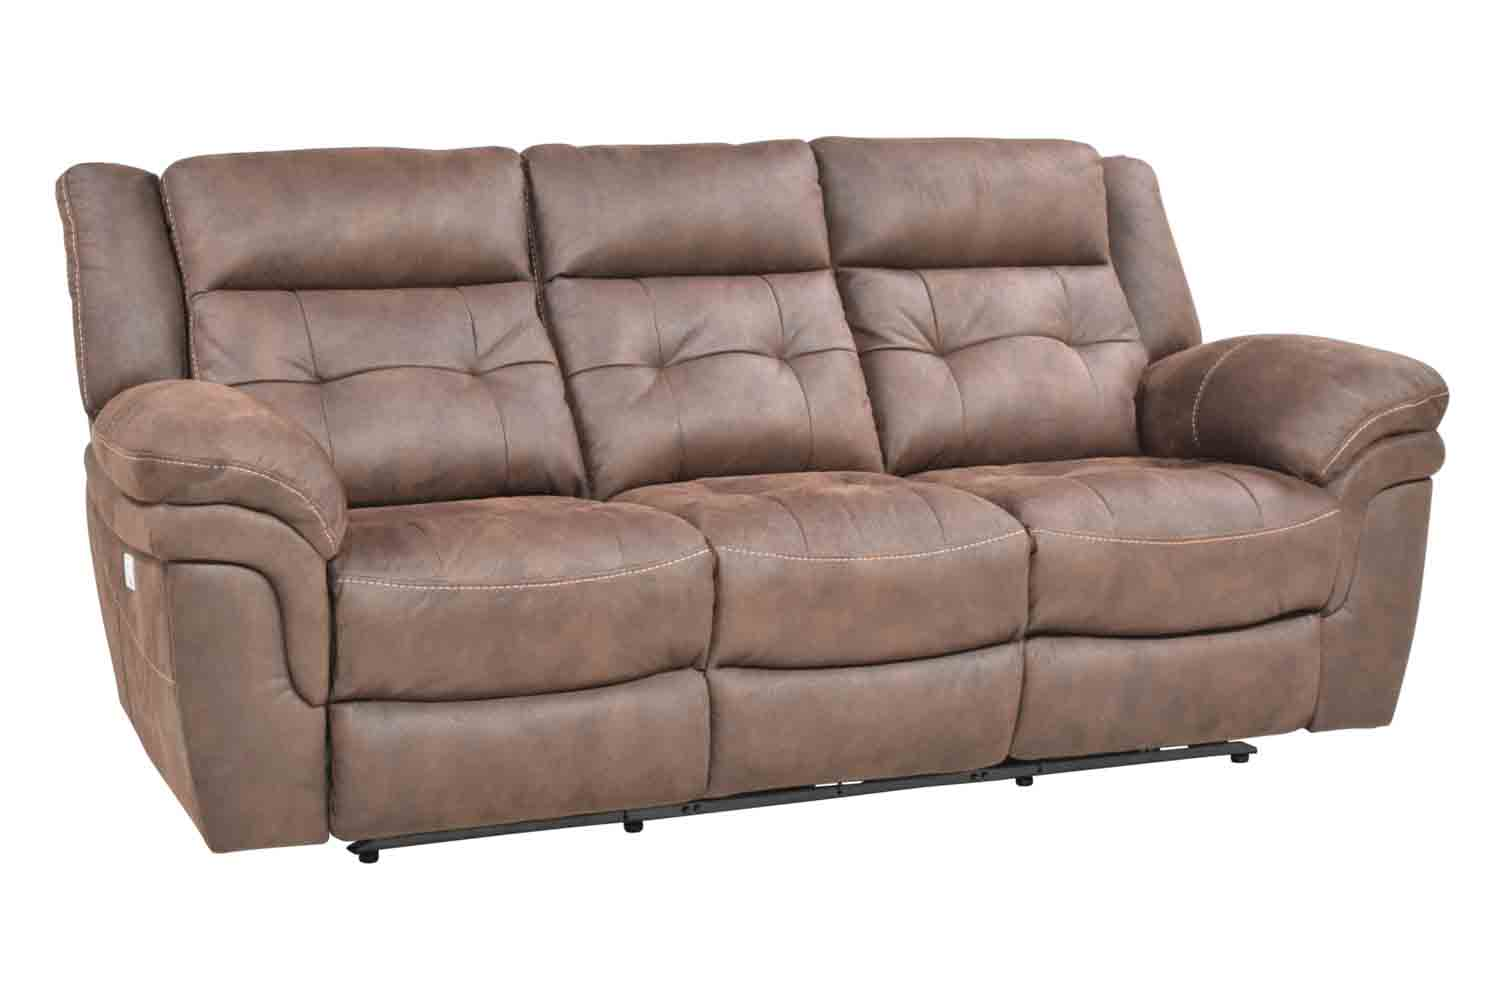 Sofas & Couches for Sale | Mor Furniture